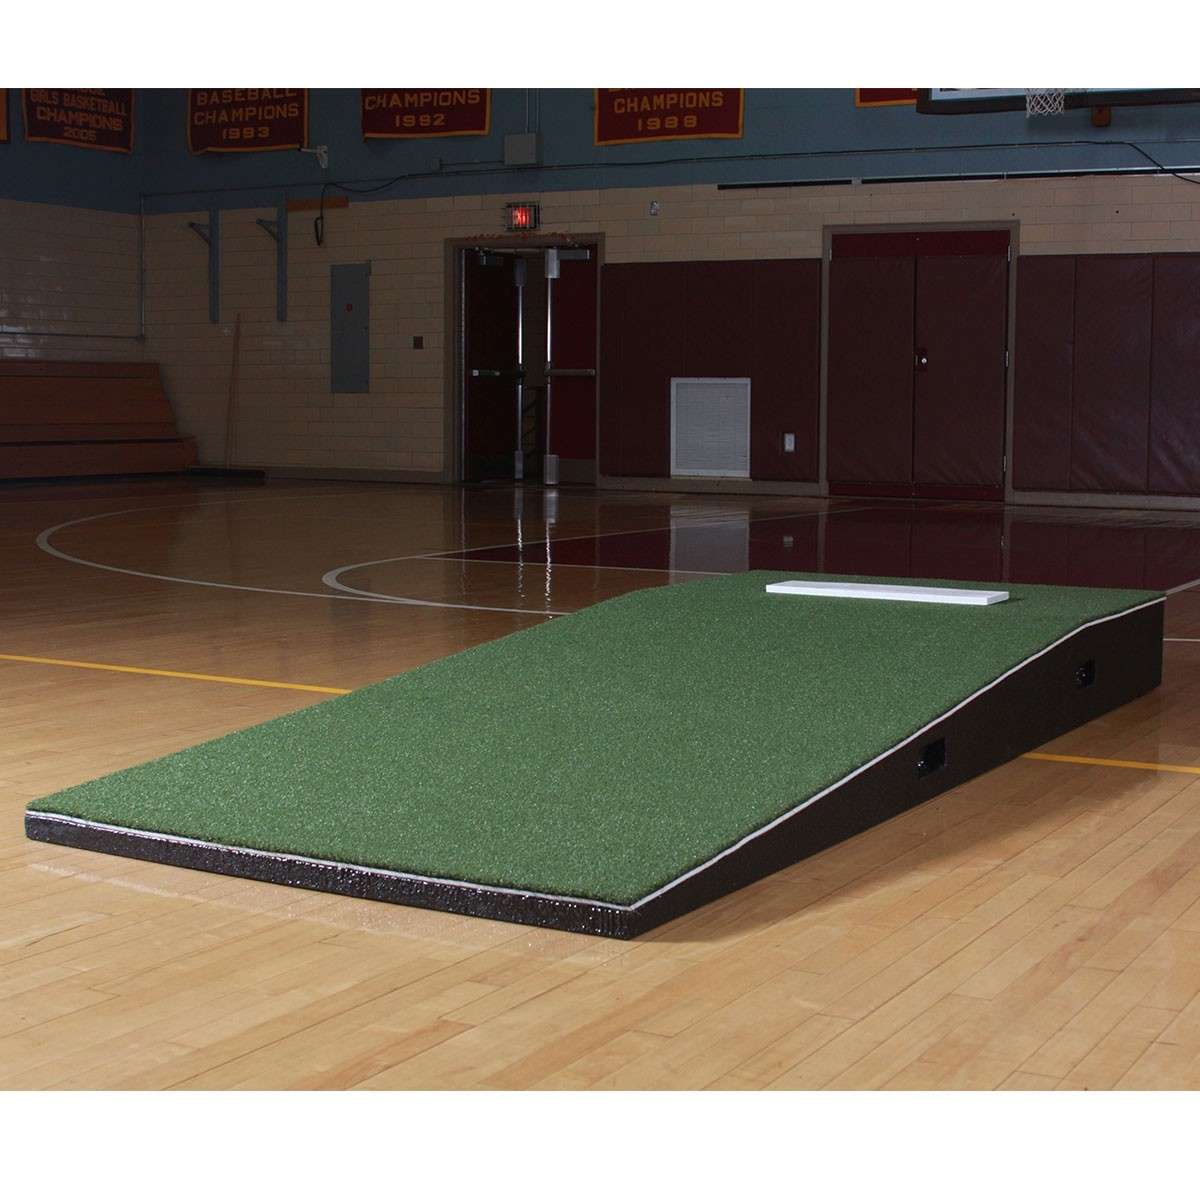 Promounds Mp2004 Pro Portable Pitching Mound Green 5 W X